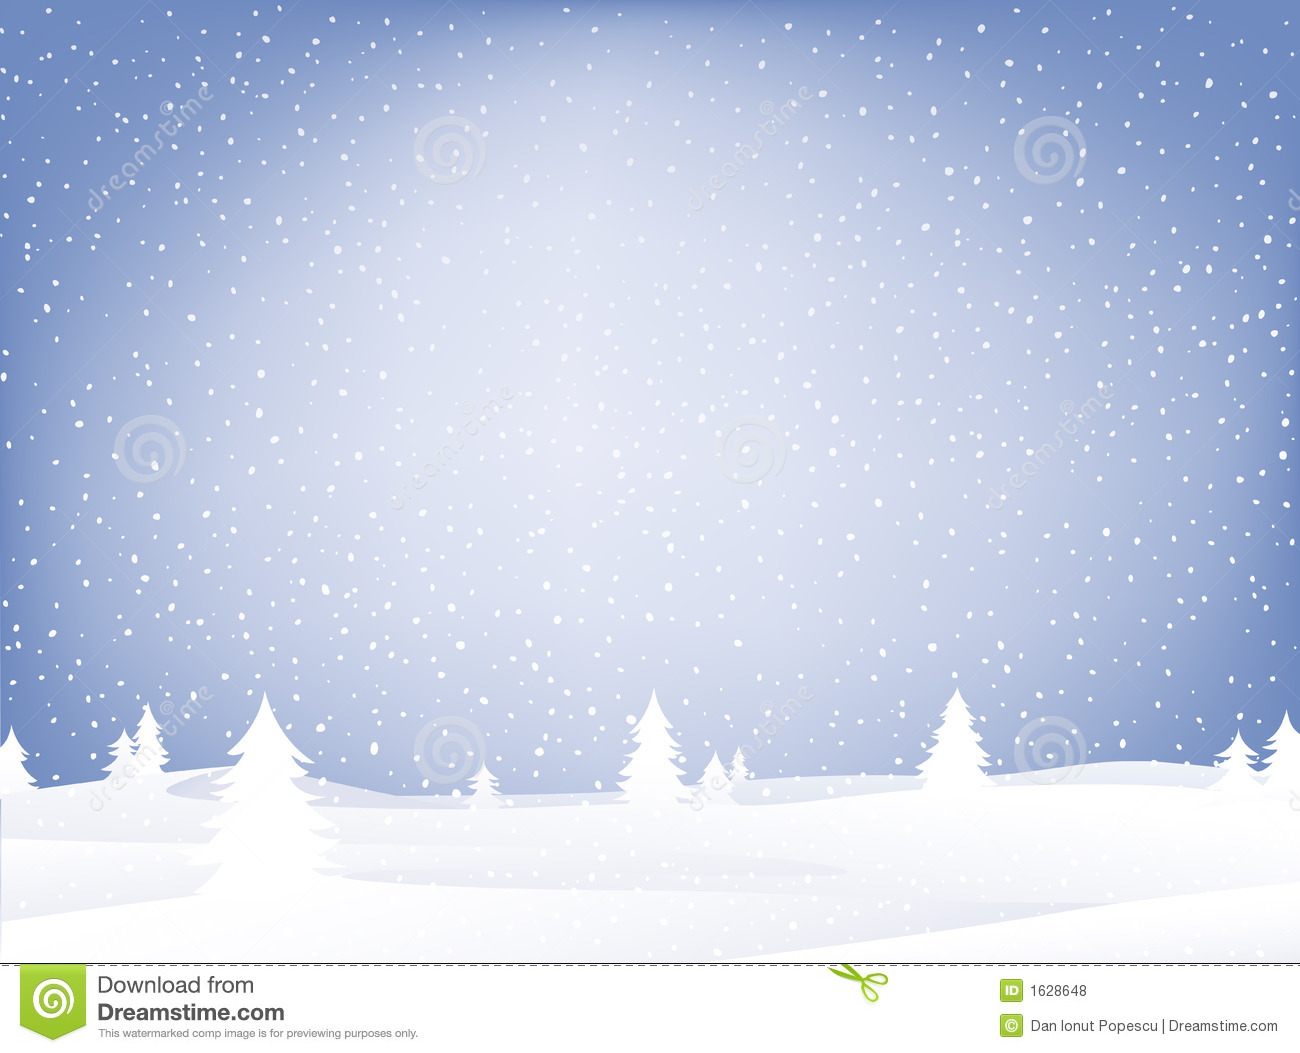 Snow Landscape Royalty Free Stock Photos - Image: 1628648